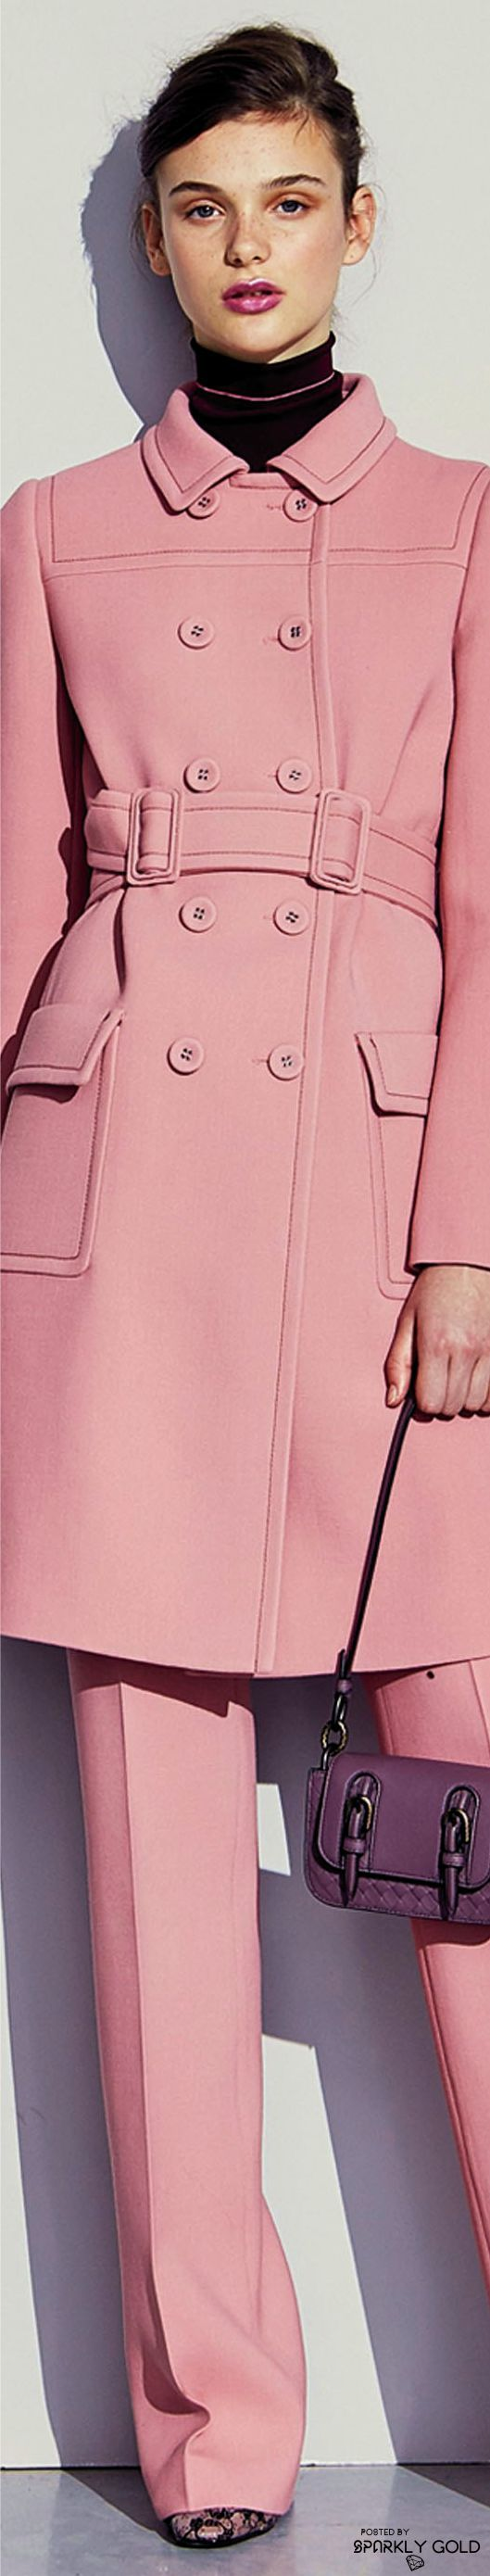 Coats in shades of pink - grabbing attention on a dark winter day ~ Cortigiana 2016 re. Bottega Veneta Pre-Fall 2017